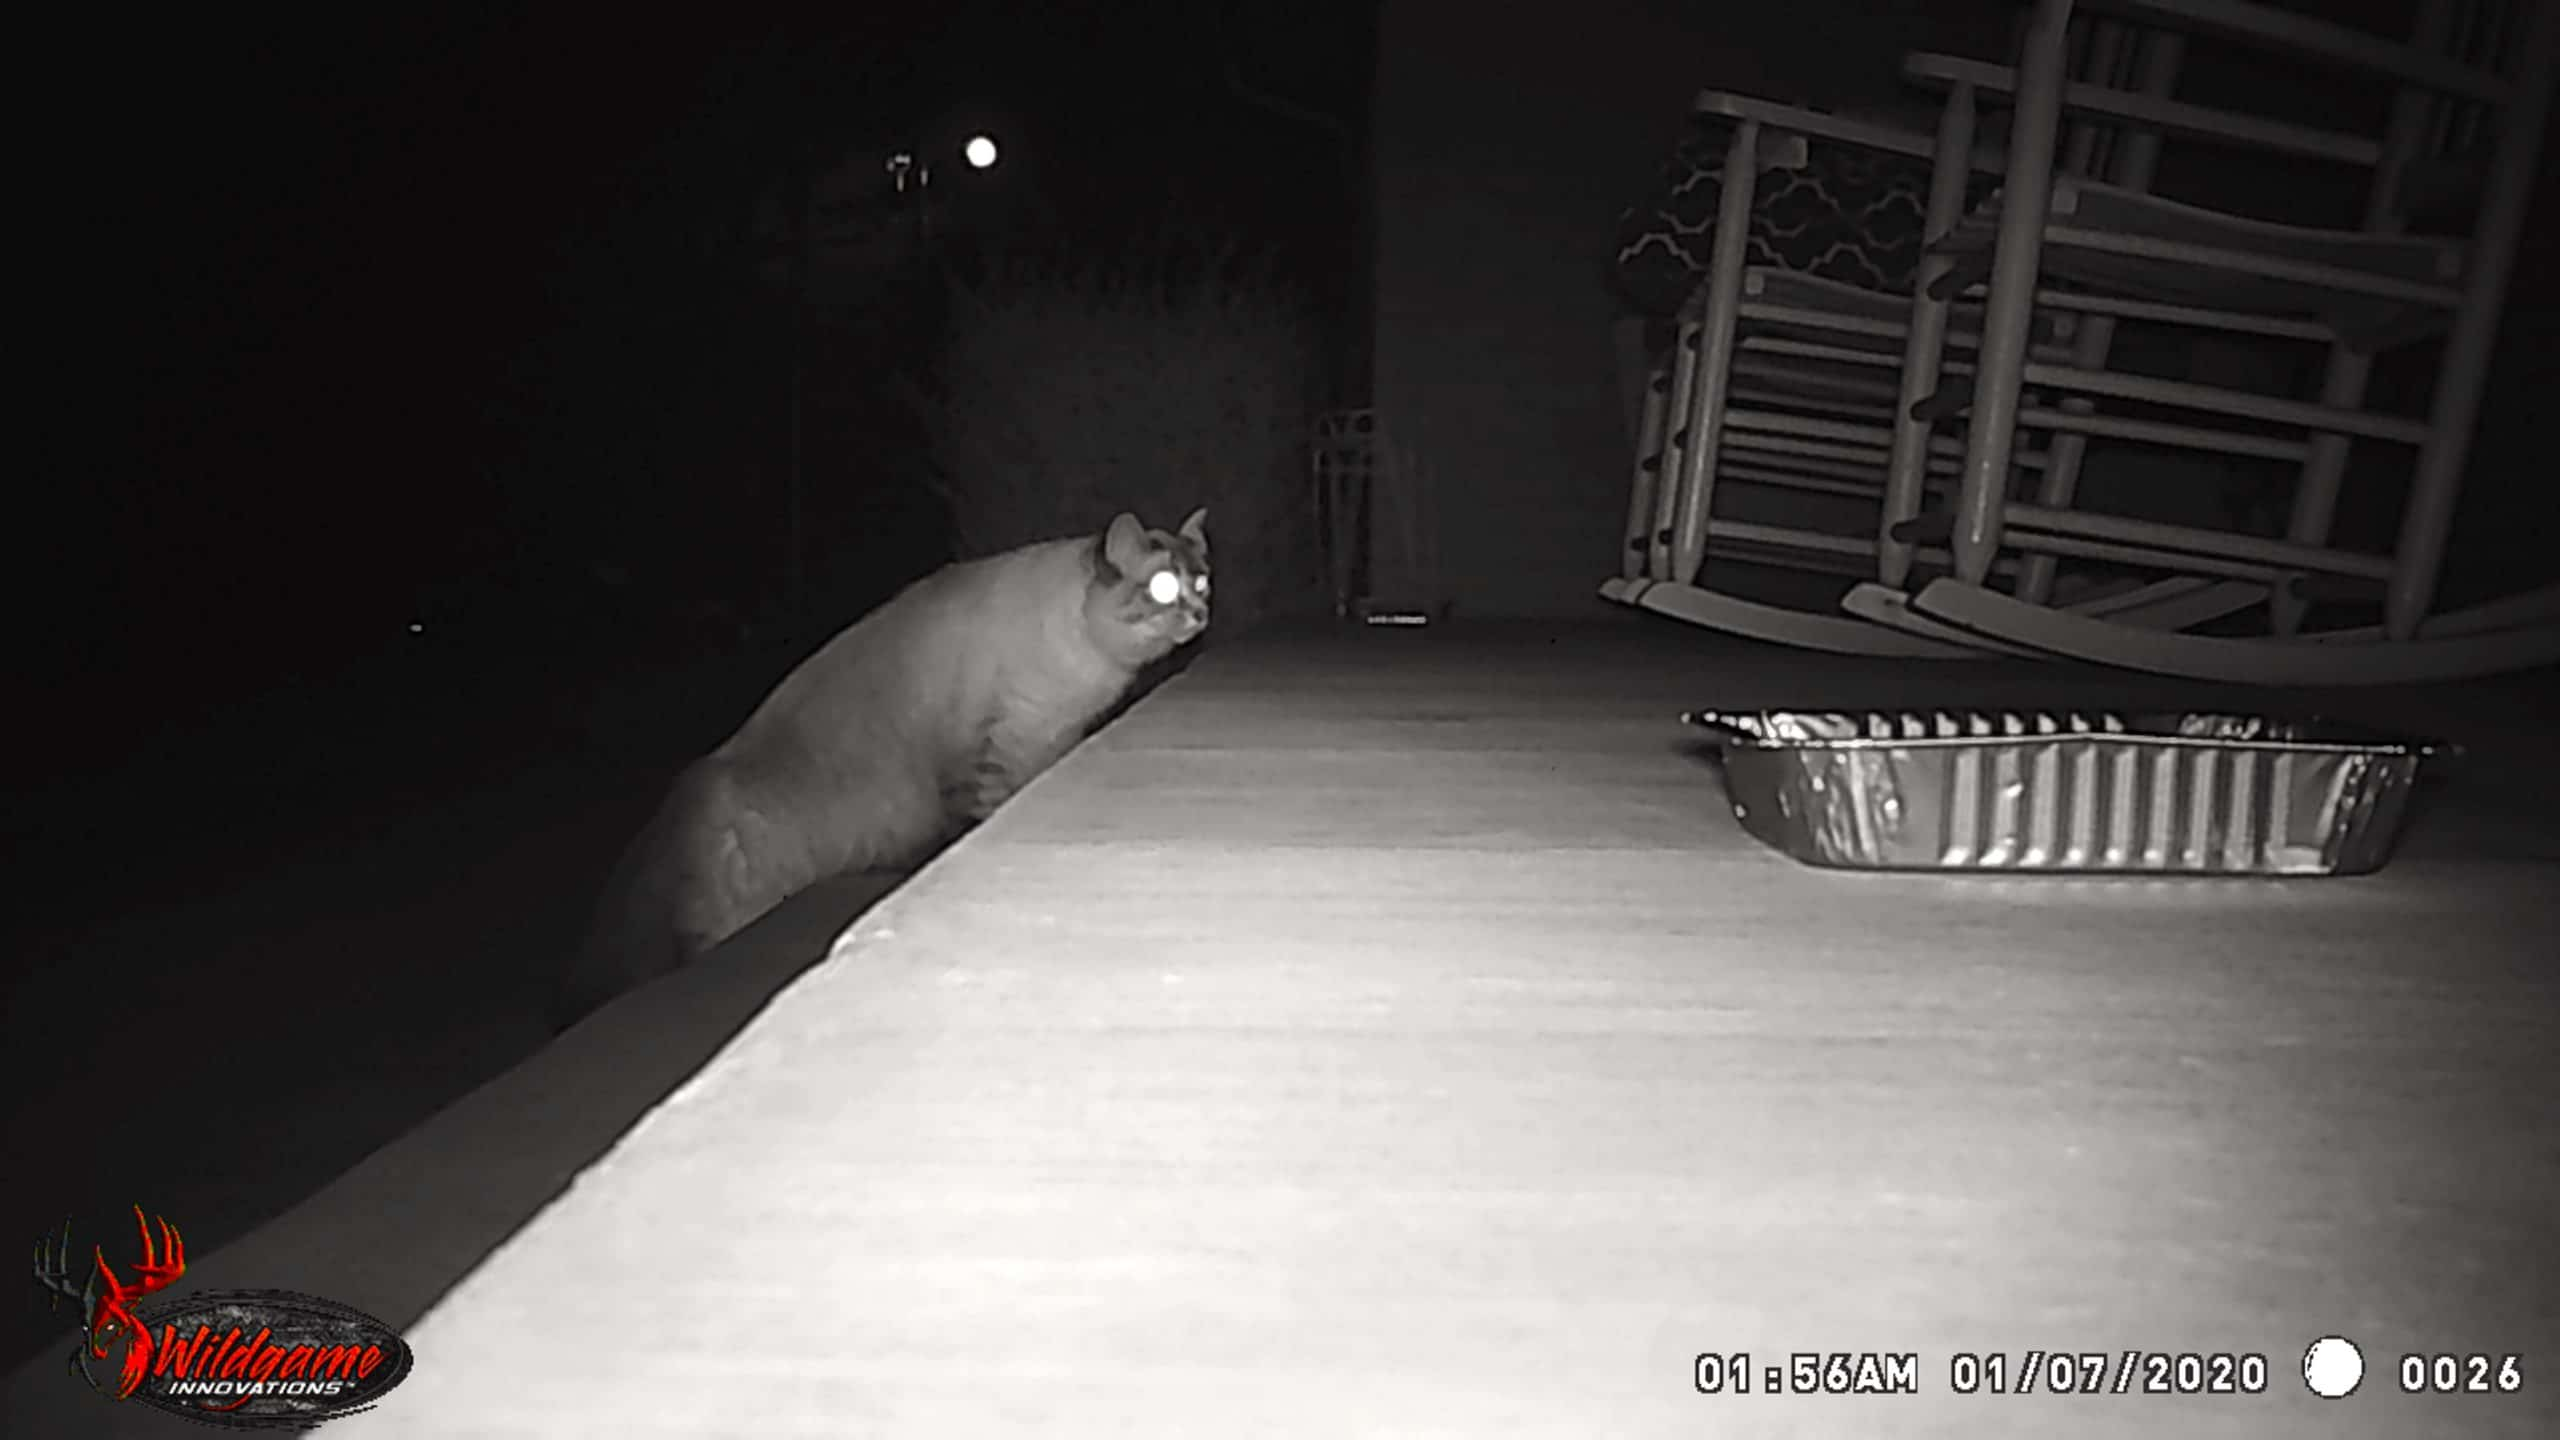 Tom sneaking on the porch for some food.